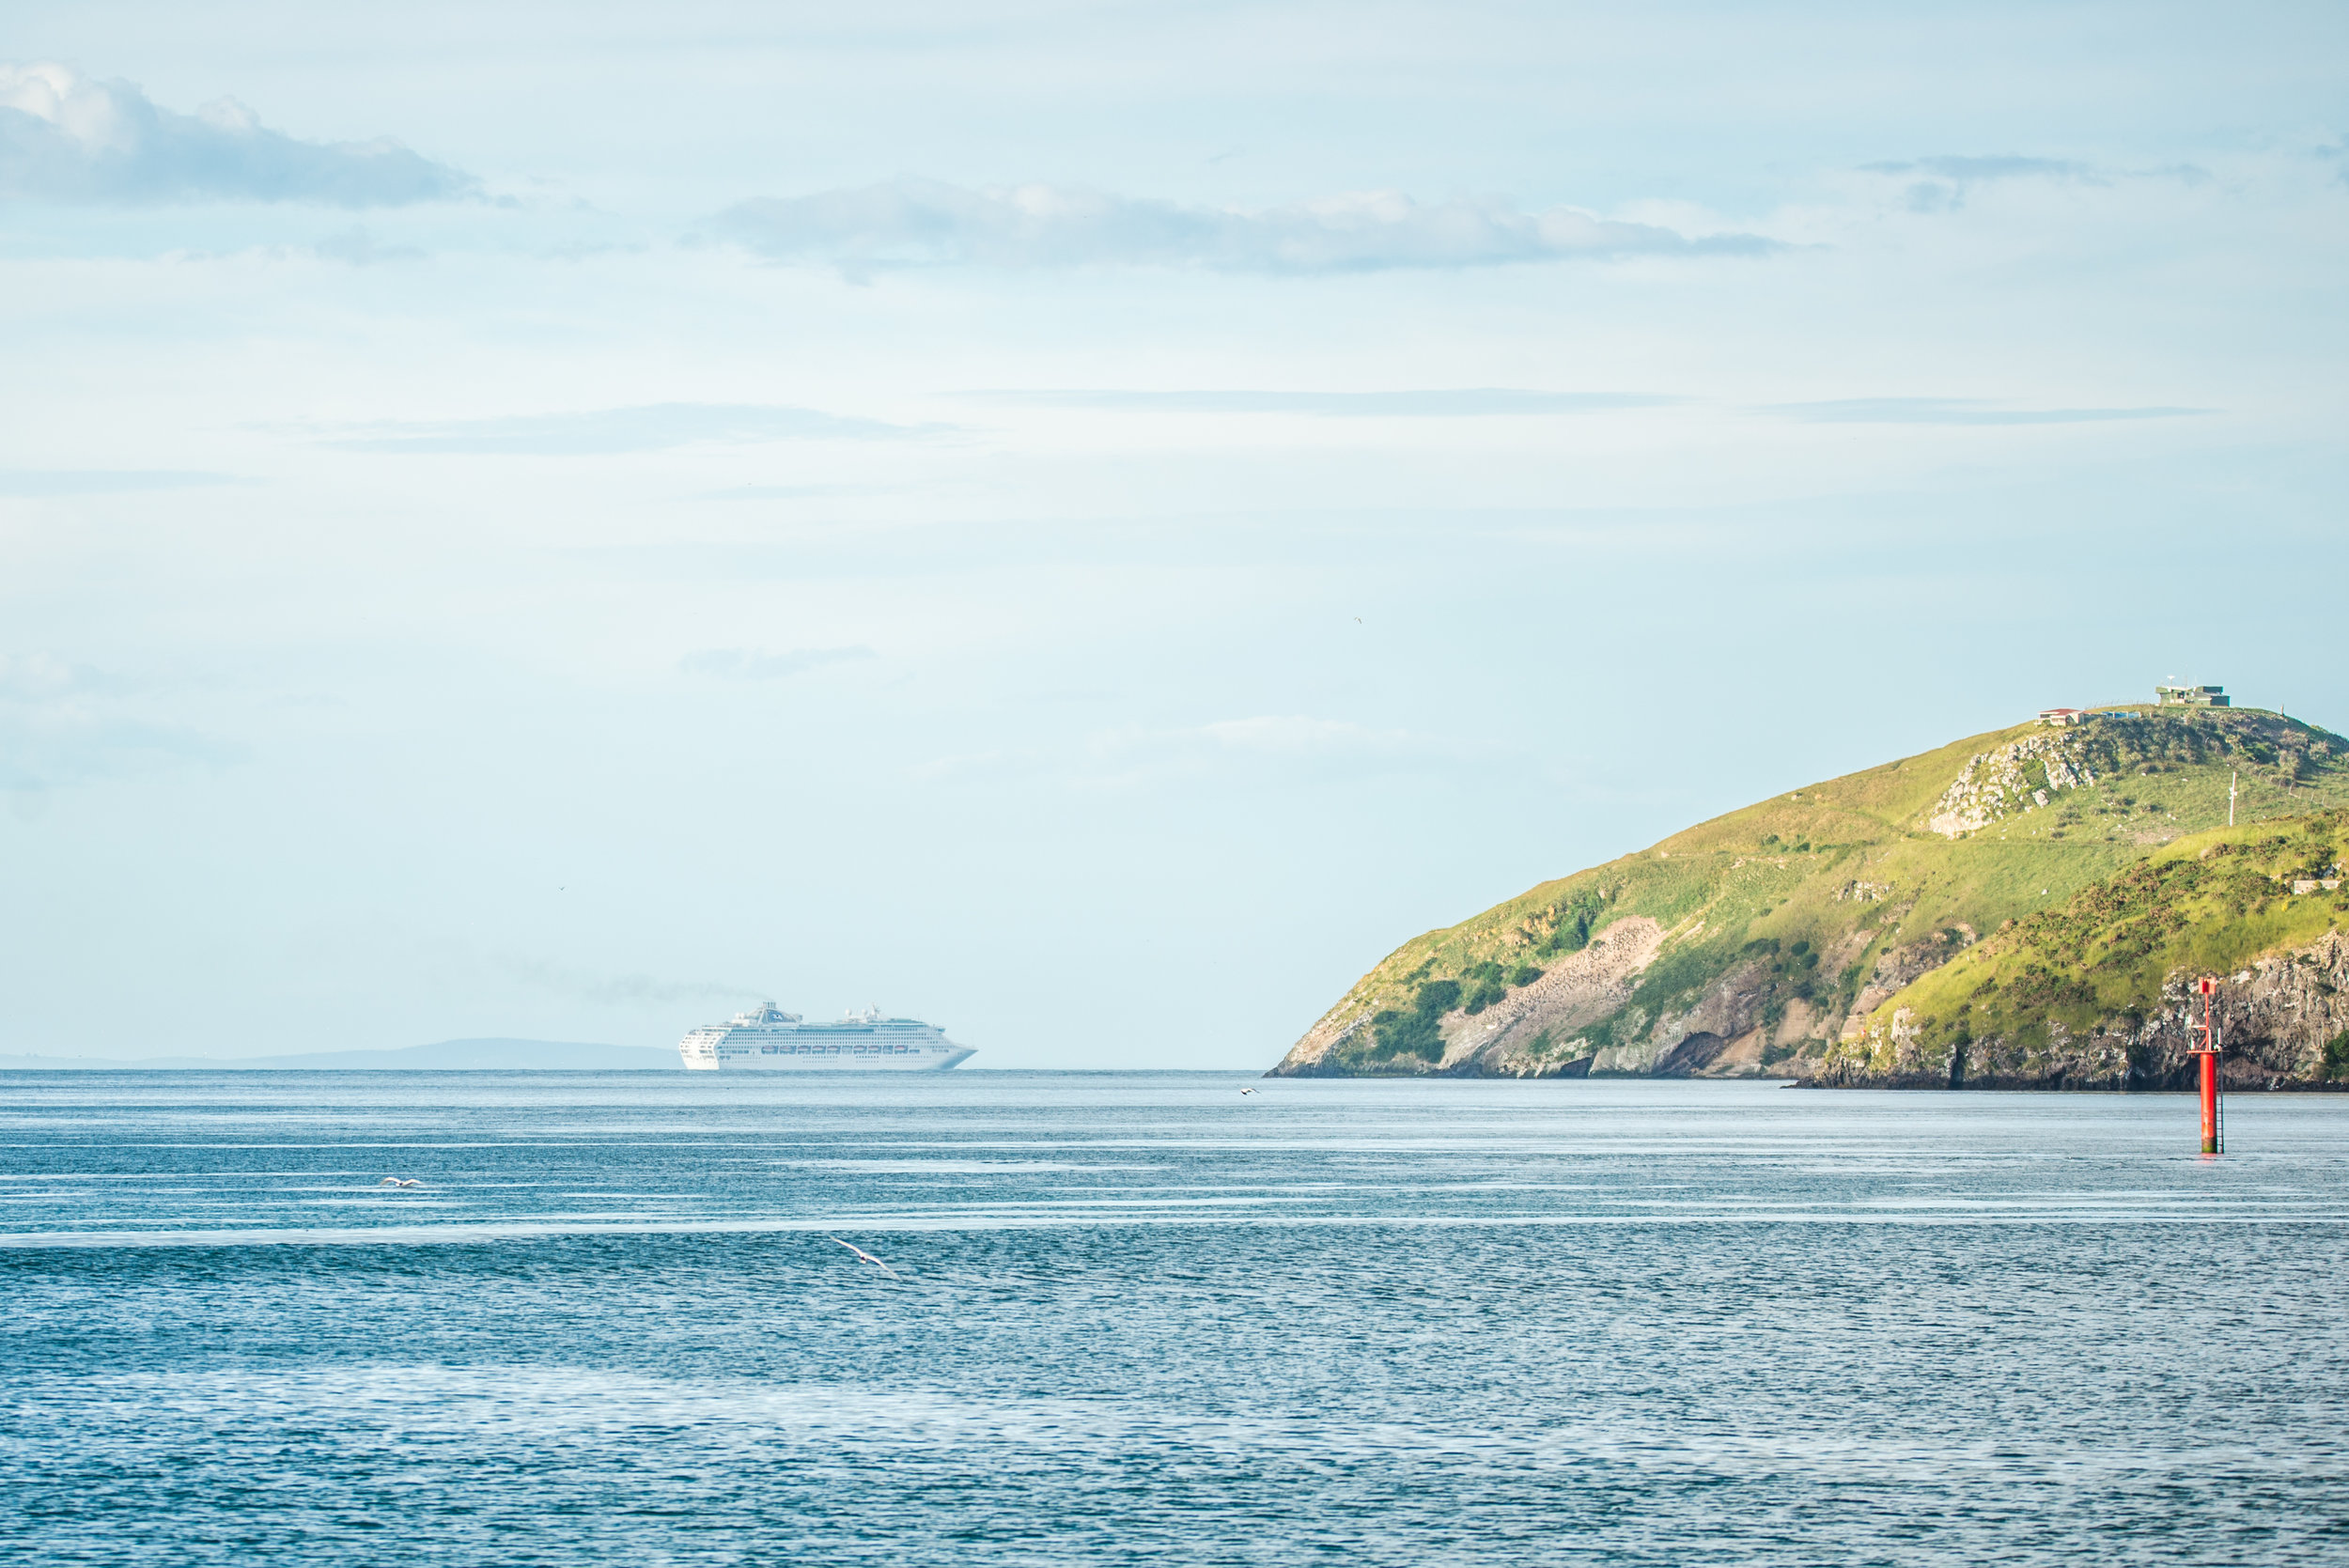 Taiaroa Head with Sea Princess-3742.jpg